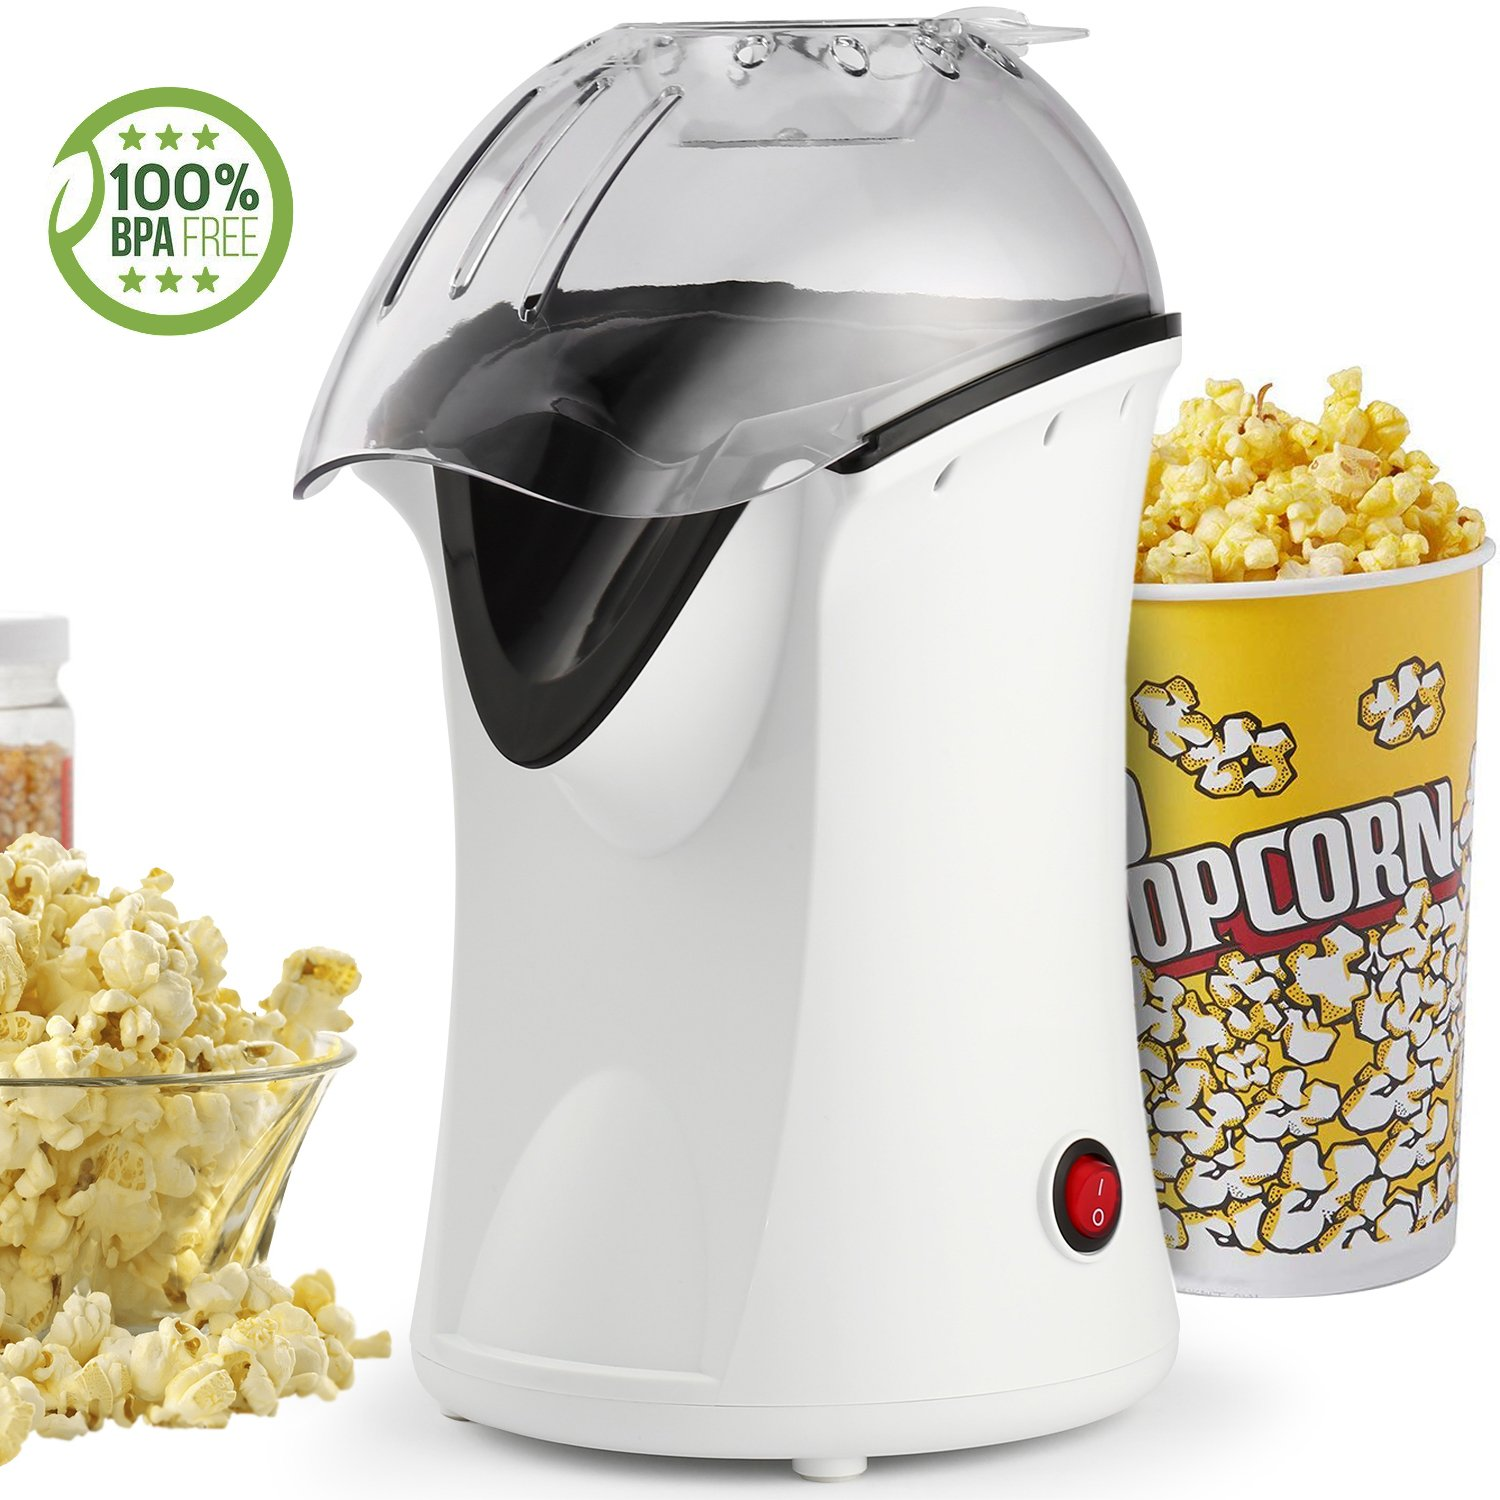 Anfan Popcorn Maker, 1200W Fast Popcorn Machine, Hot Air Popcorn Popper with Wide Mouth Design, No Oil Needed, Including Measuring Cup and Removable Lid (White)